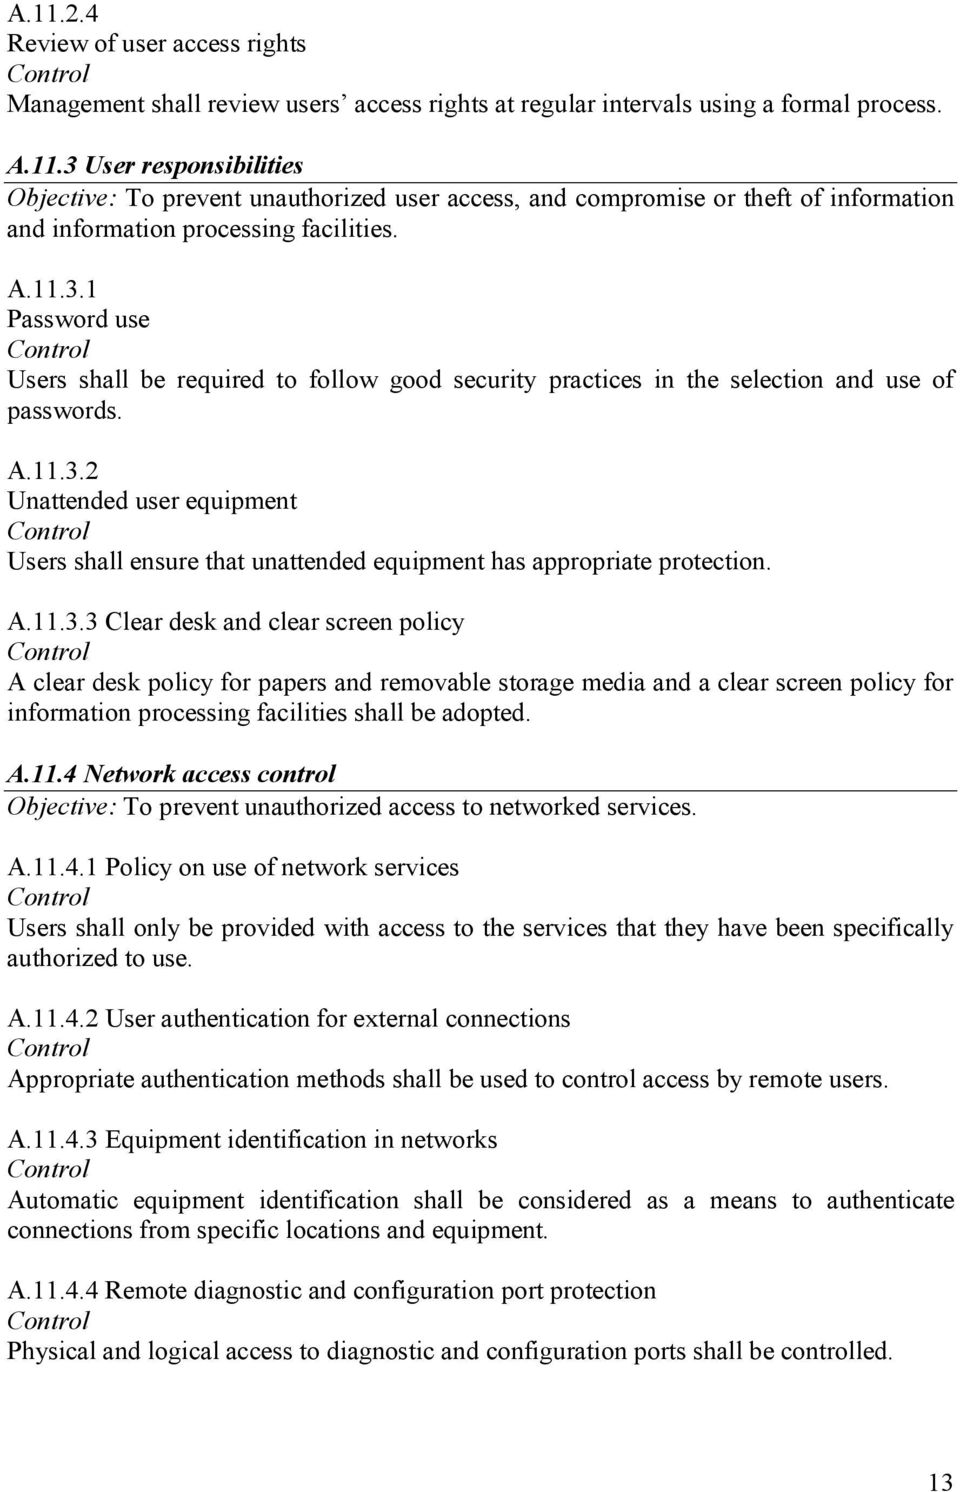 A.11.3.3 Clear desk and clear screen policy A clear desk policy for papers and removable storage media and a clear screen policy for information processing facilities shall be adopted. A.11.4 Network access control Objective: To prevent unauthorized access to networked services.